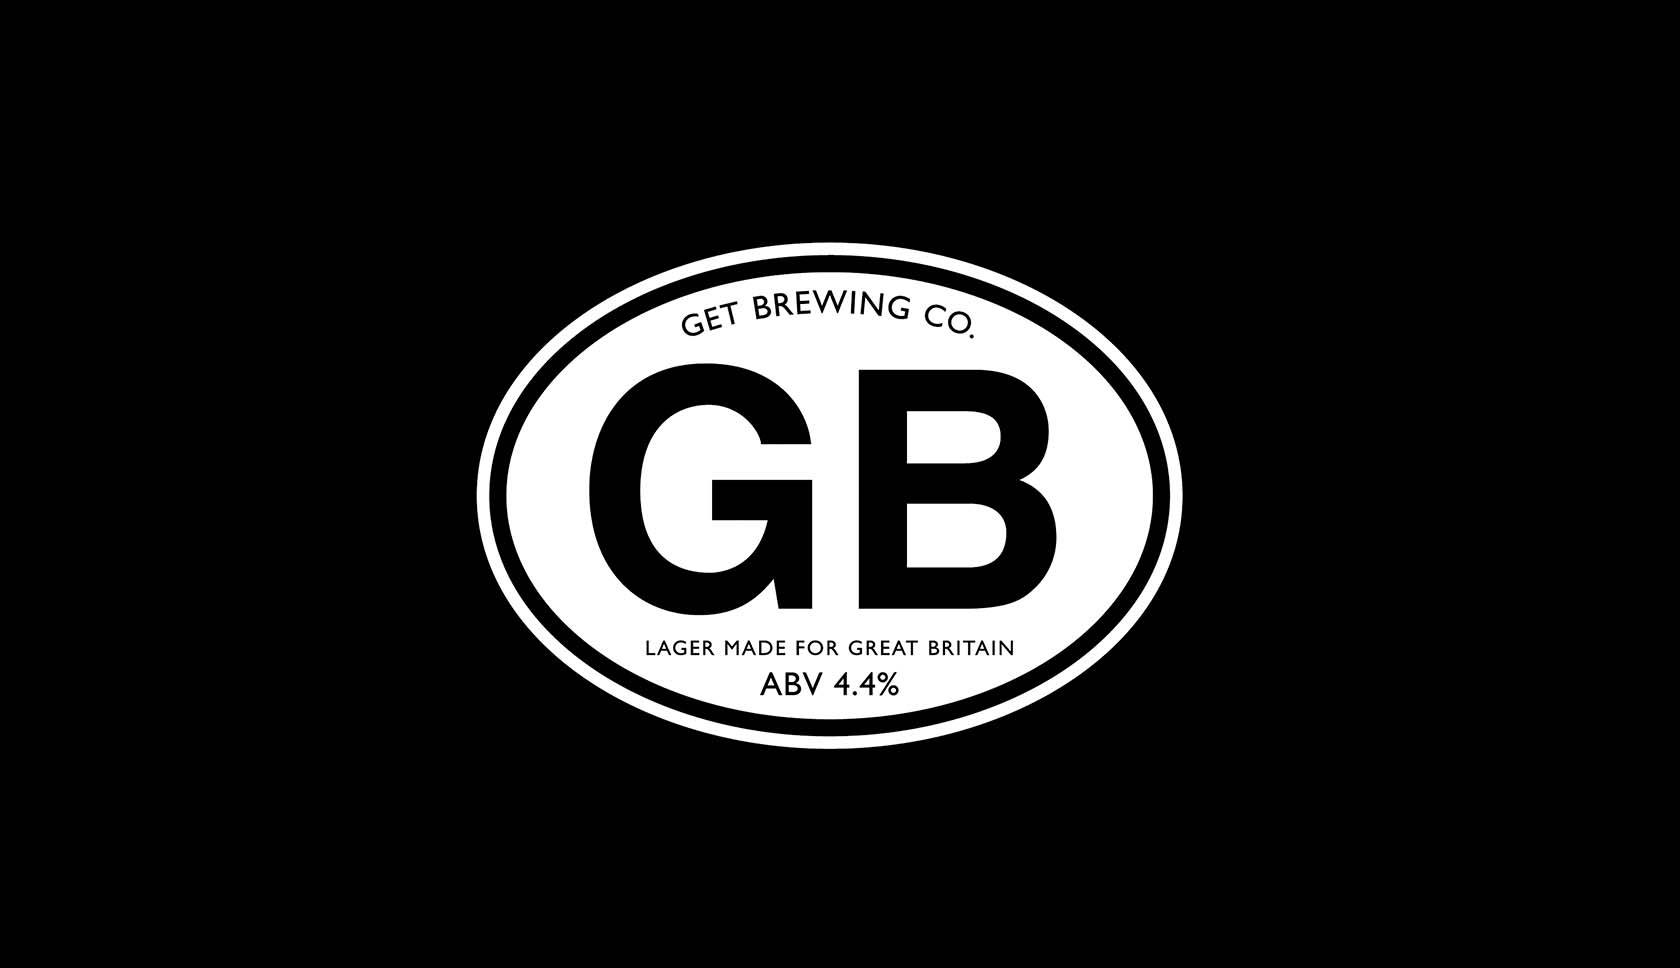 WMH-GB-GET-BREWING-LOGO-WEB image